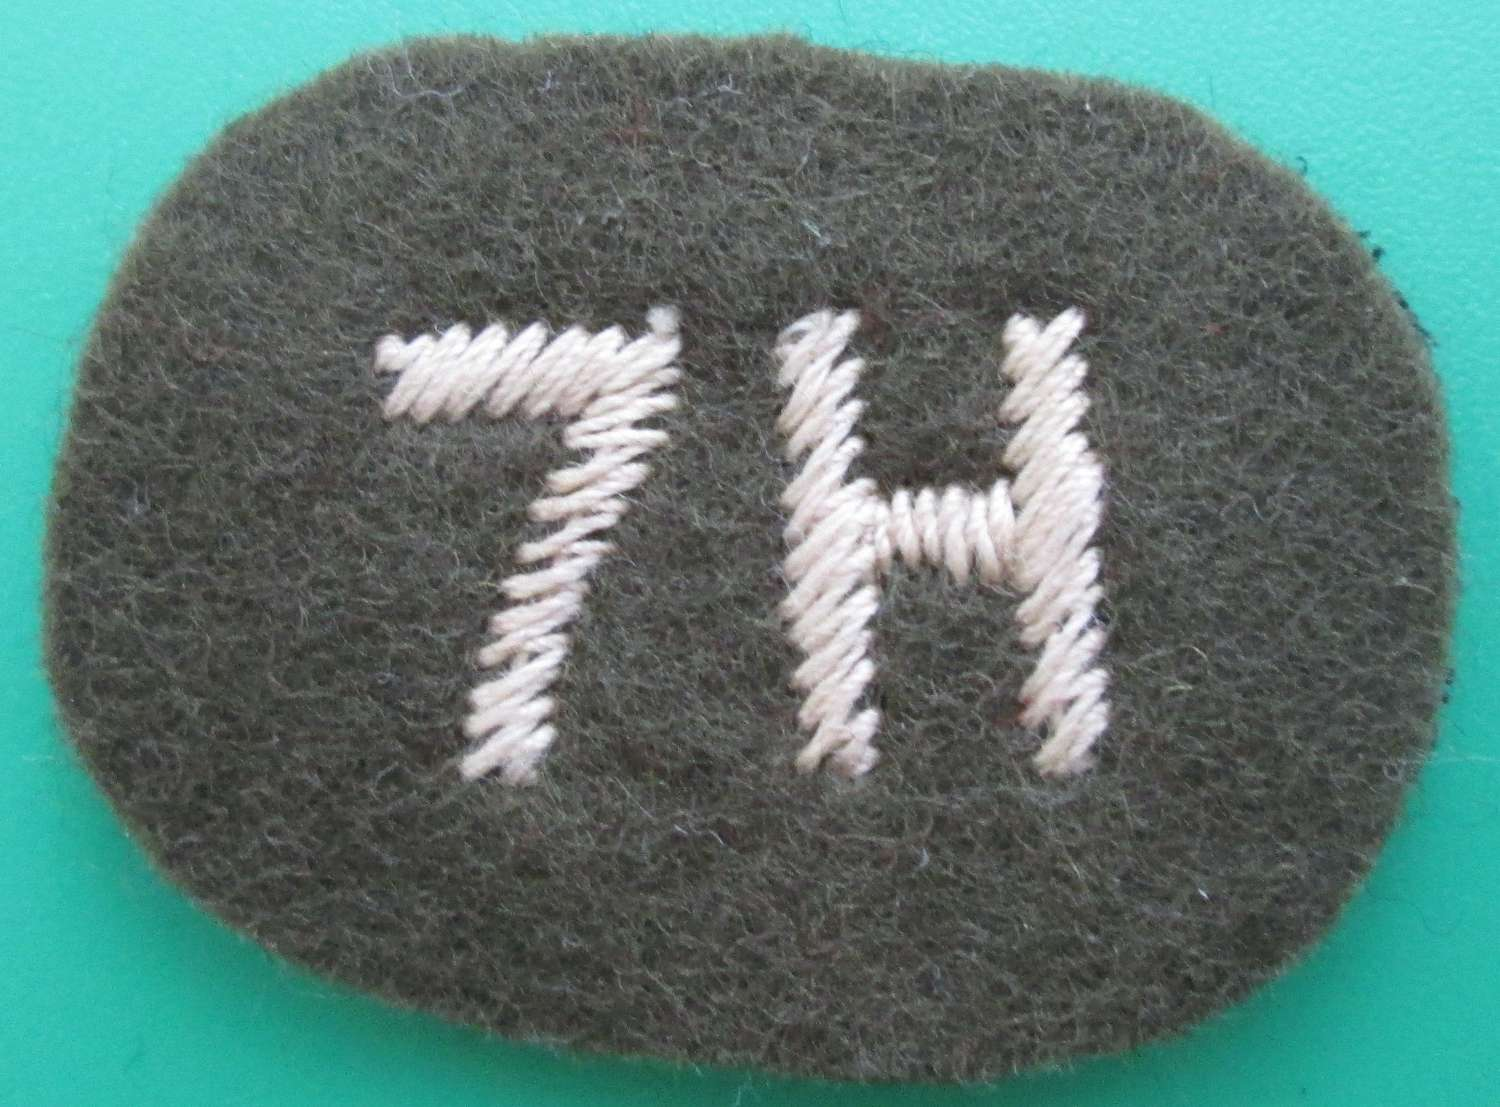 A 7TH HUSSARS PATCH